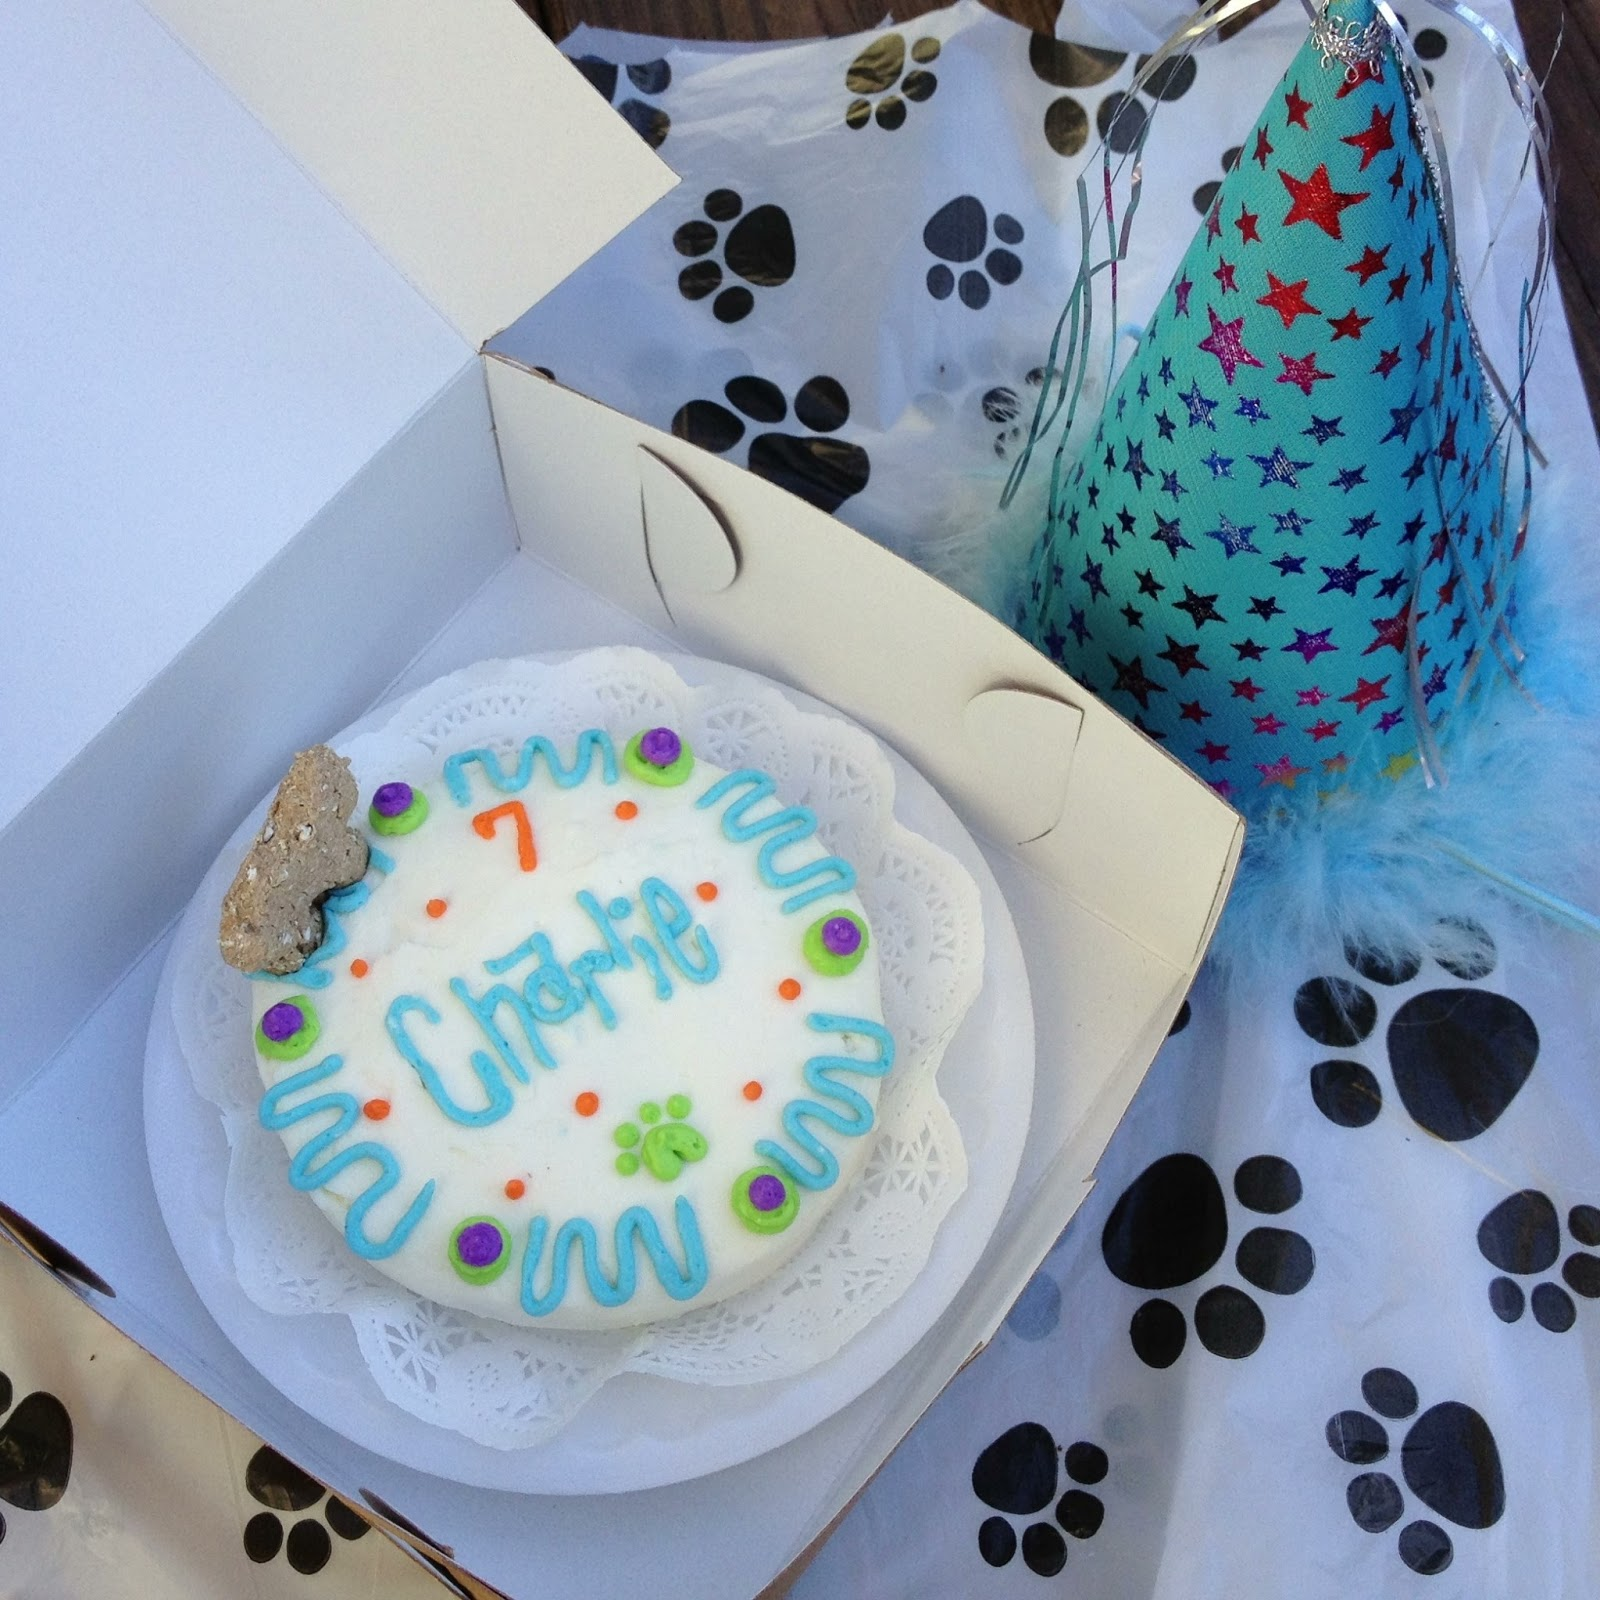 Dog Birthday Cakes New Orleans The Best Cake Of 2018